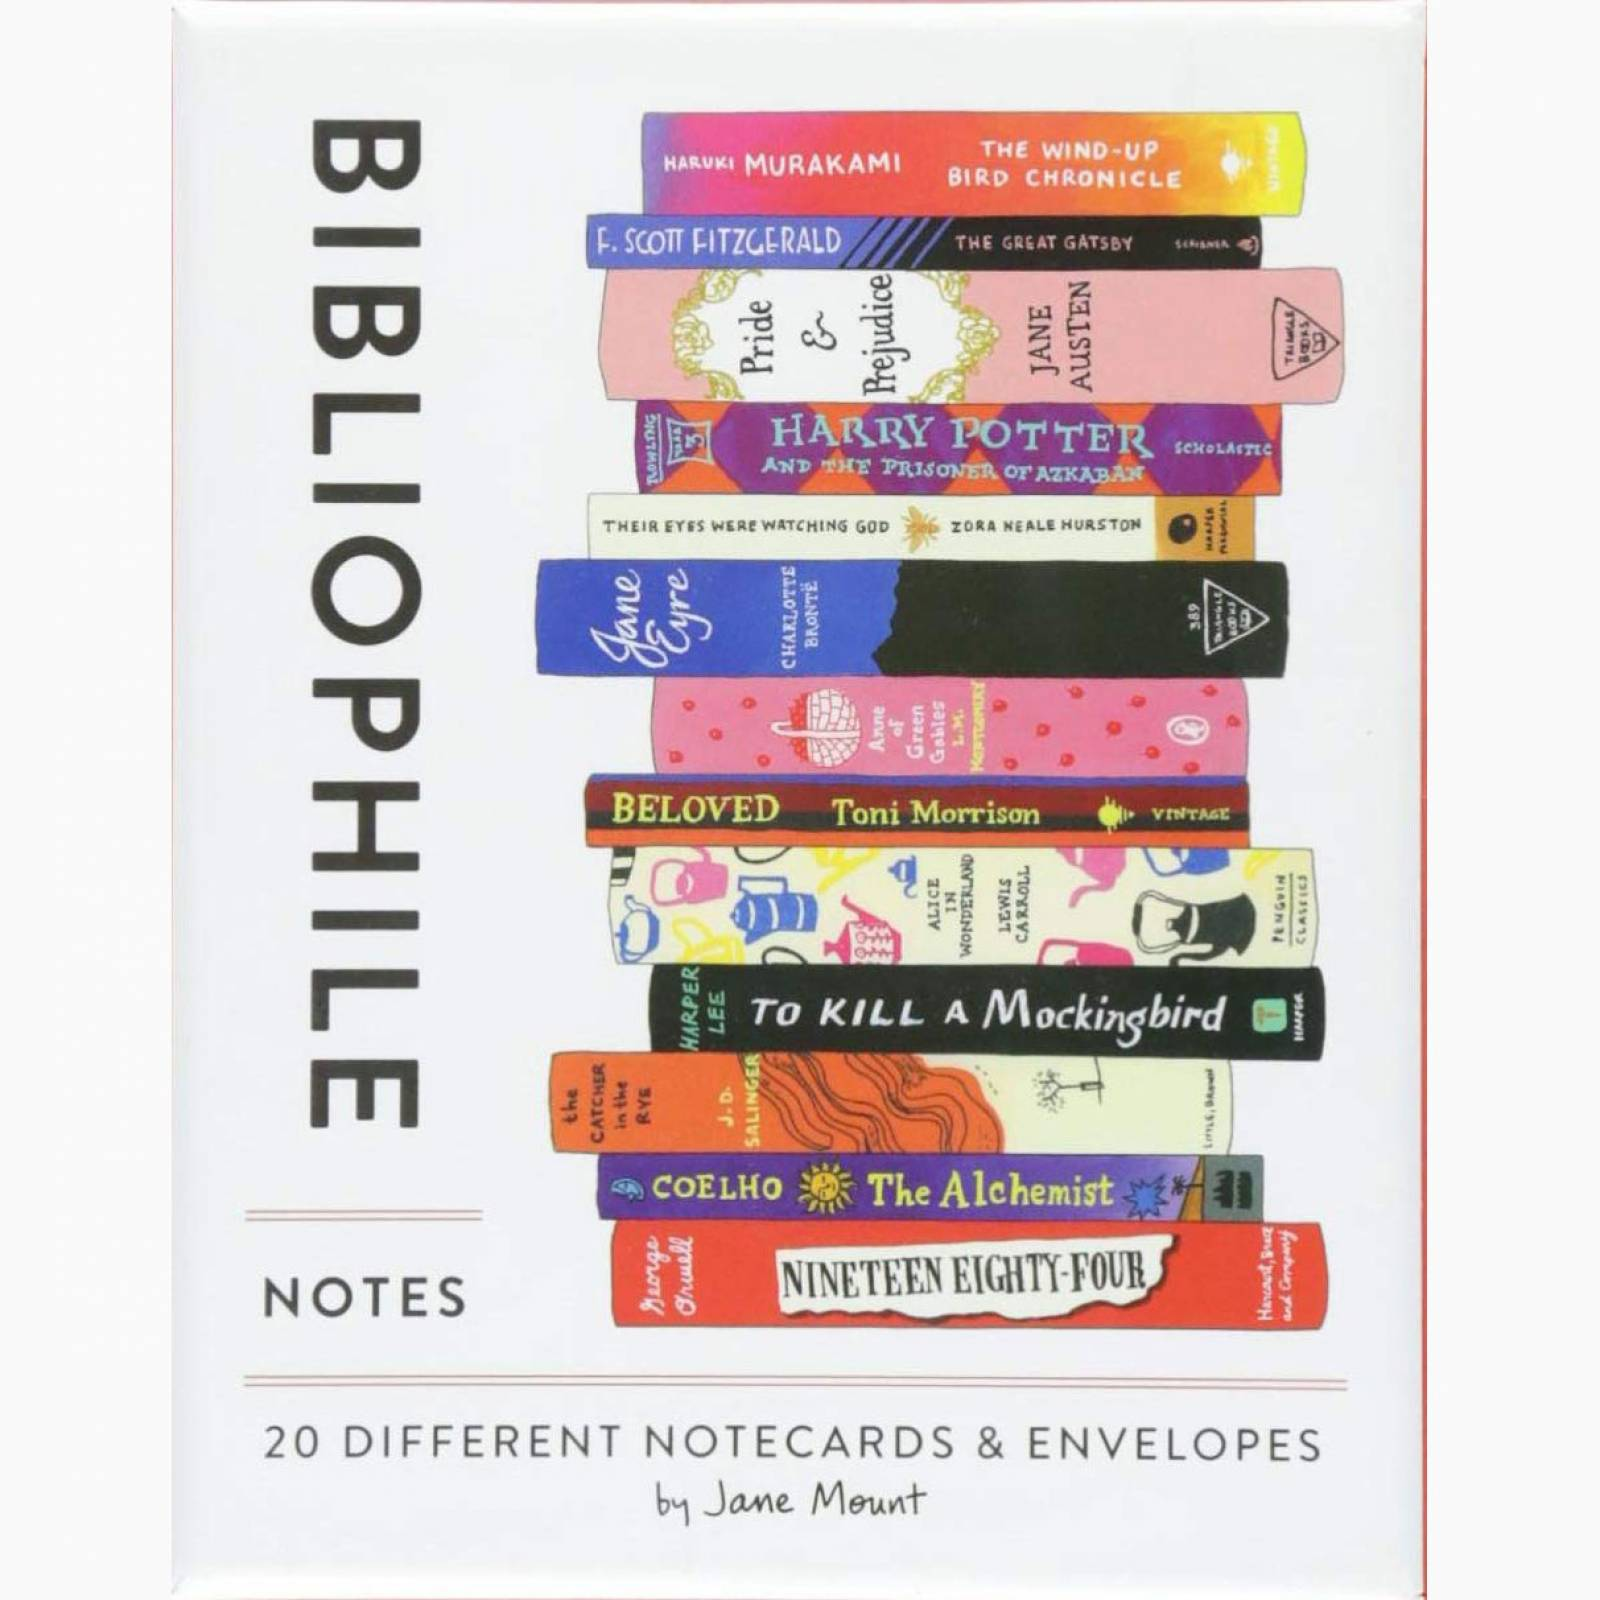 Bibliophile Notes: 20 Notecards And Envelopes